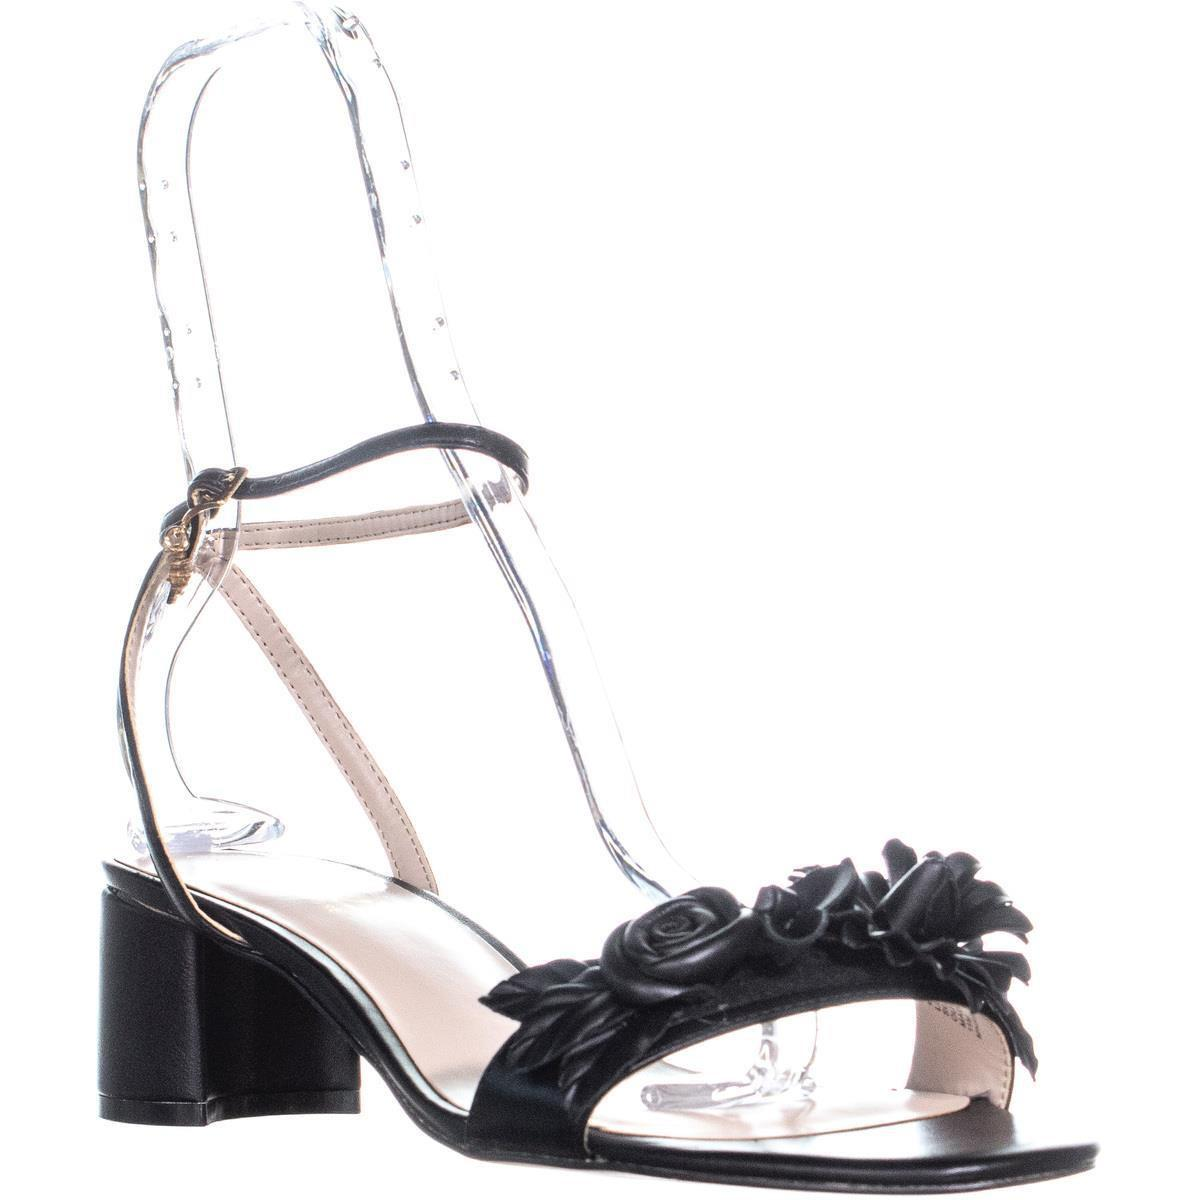 39ad34acabe Lyst - Nanette Lepore Donna Heeled Sandals in Black